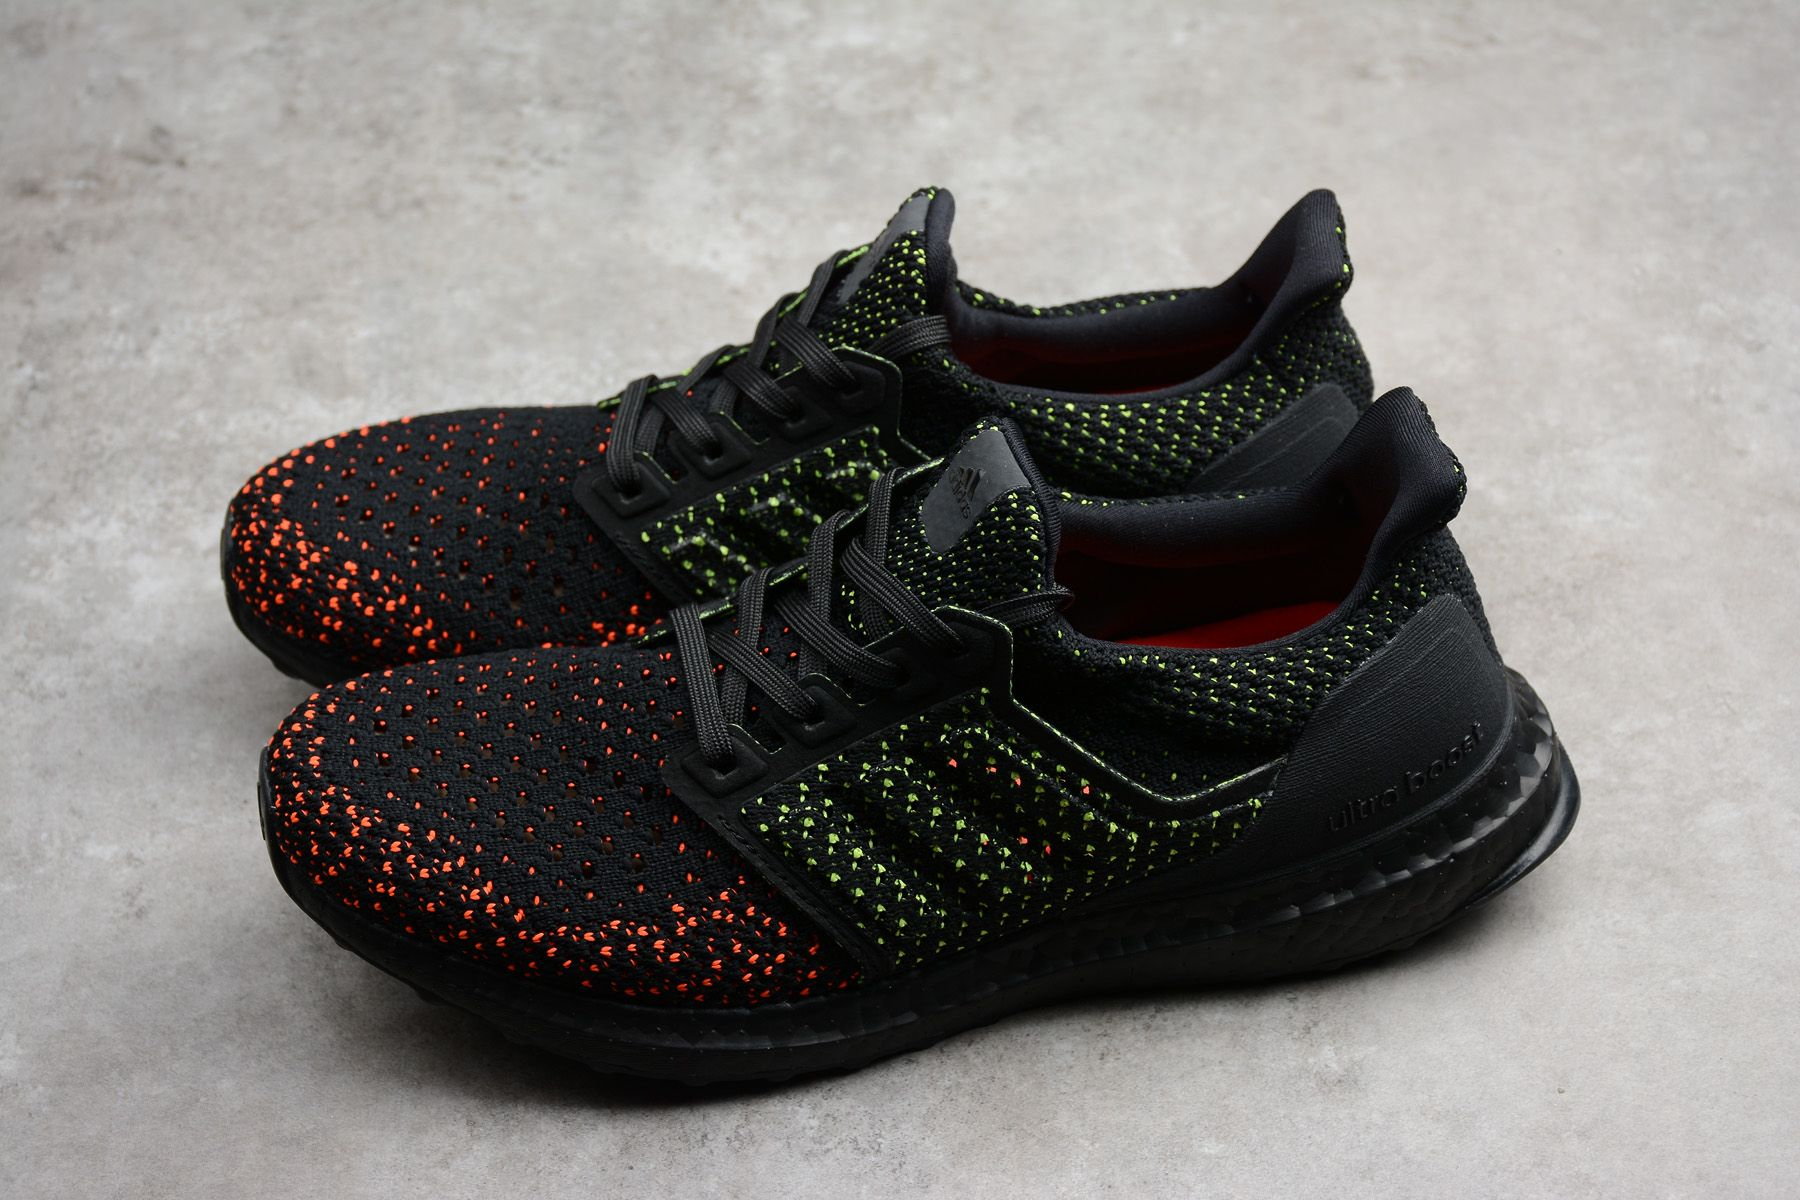 f1d3521e7 Cheap adidas Ultra Boost Clima Core Black Solar Red AQ0482 Shoes for men  Online Sale